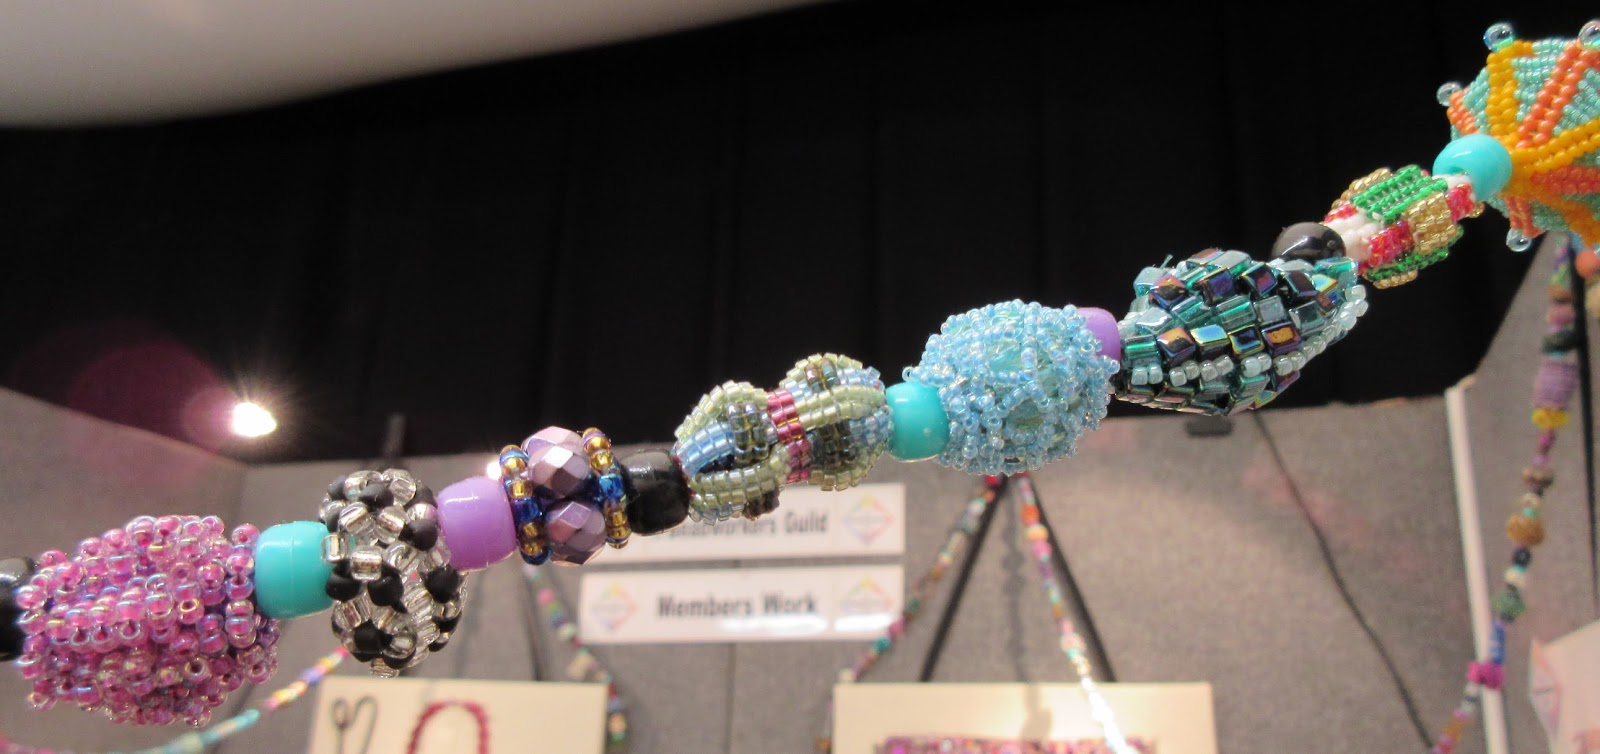 Random Nerdery: The Knitting and Stitching Show - October 2015